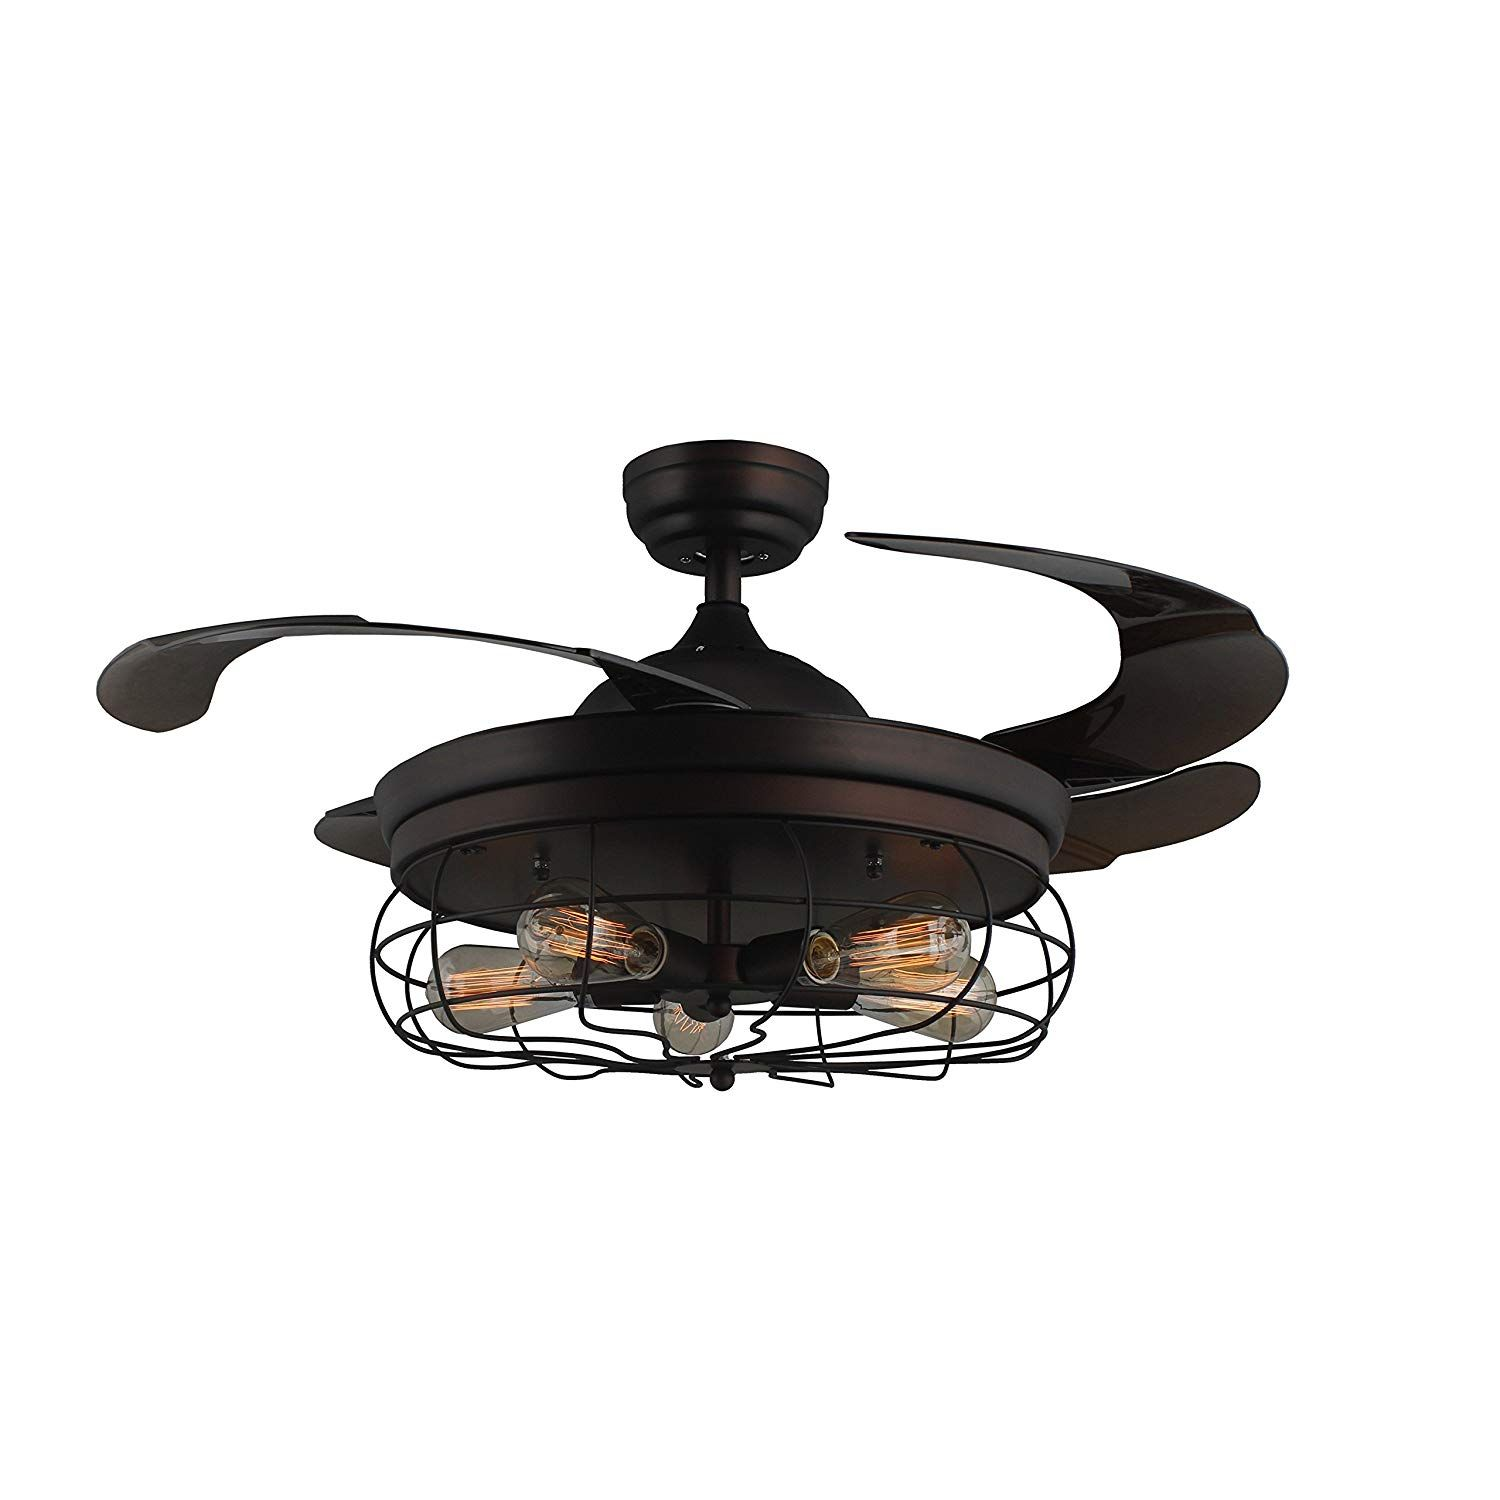 45 Industrial Edison Bulbs Ceiling Fans Wire Caged Acrylic Wiring A Fan Remote Control Retractable Blades Matte Black Finish Nestfriend